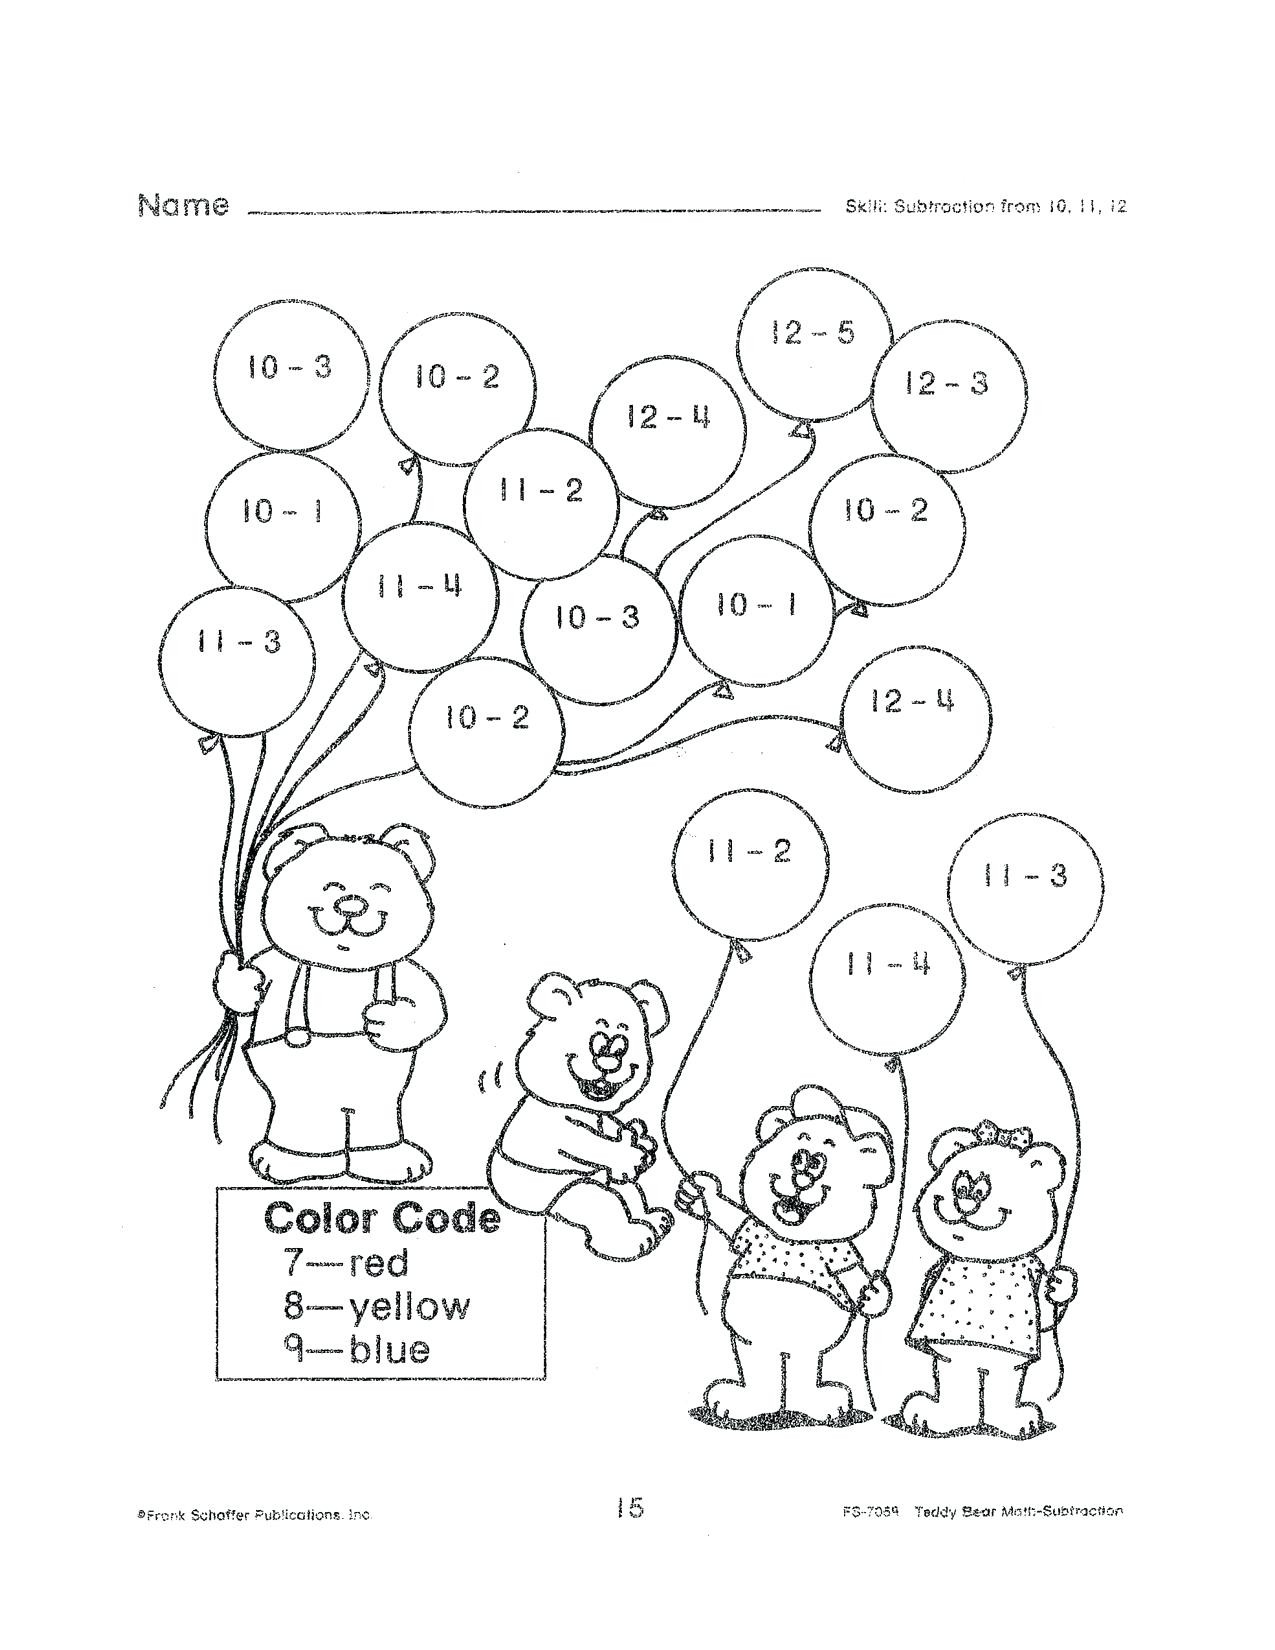 5th Grade Science Practice Worksheets 5th Grade Science Printable Worksheet Worksheets and Life